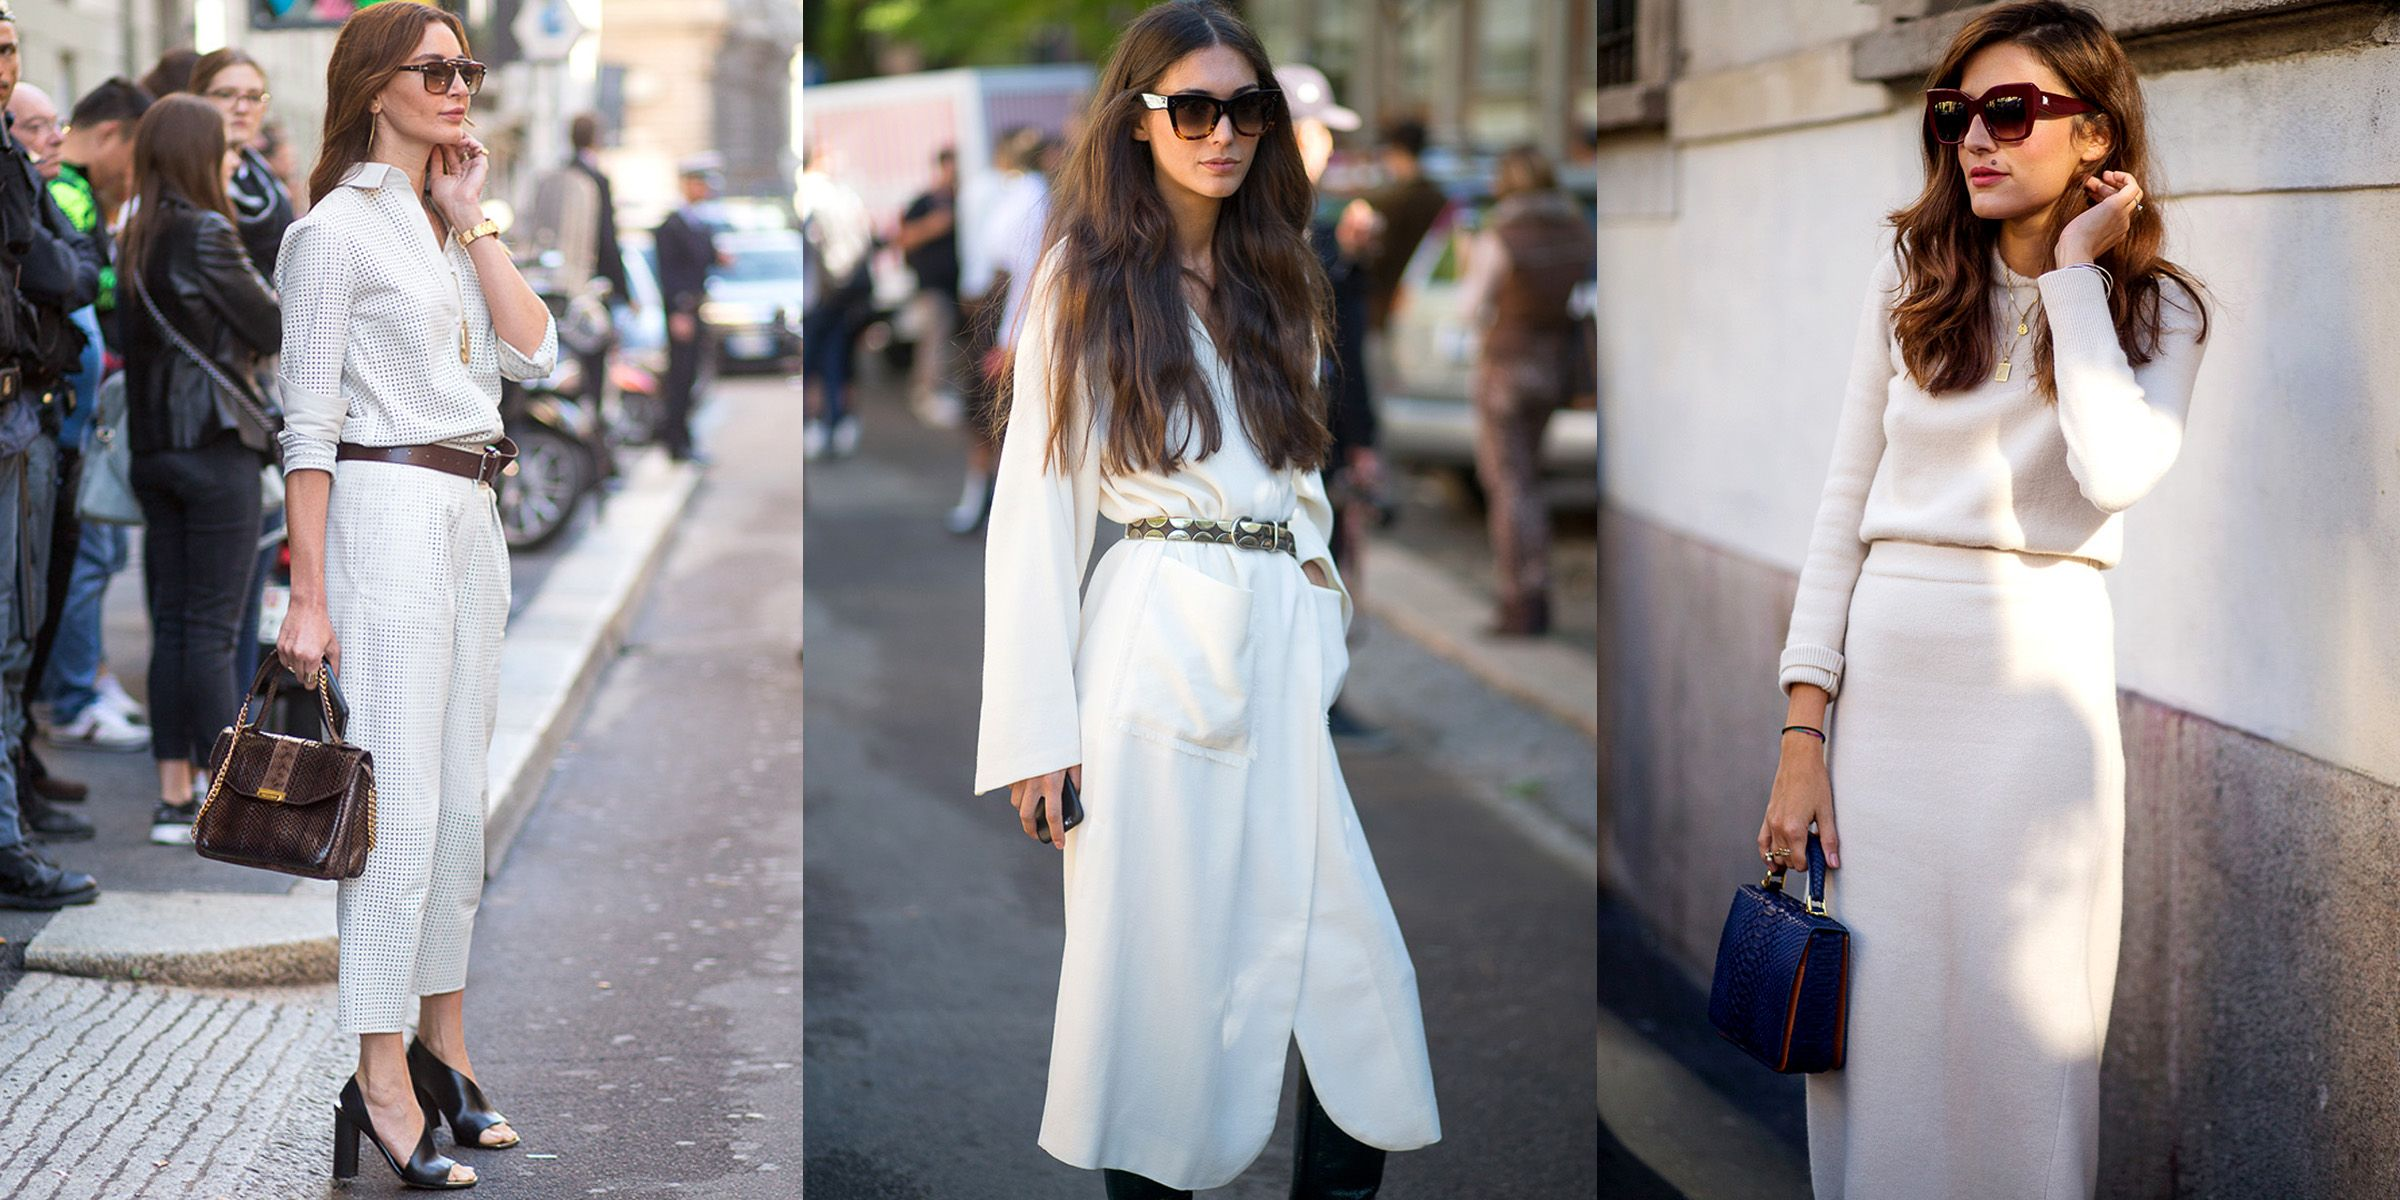 <p>Take a cue from these glamorous show-goers spotted this week, and indulge in the luxurious simplicity of an all-white ensemble. Only further proof that great minds think alike. </p>